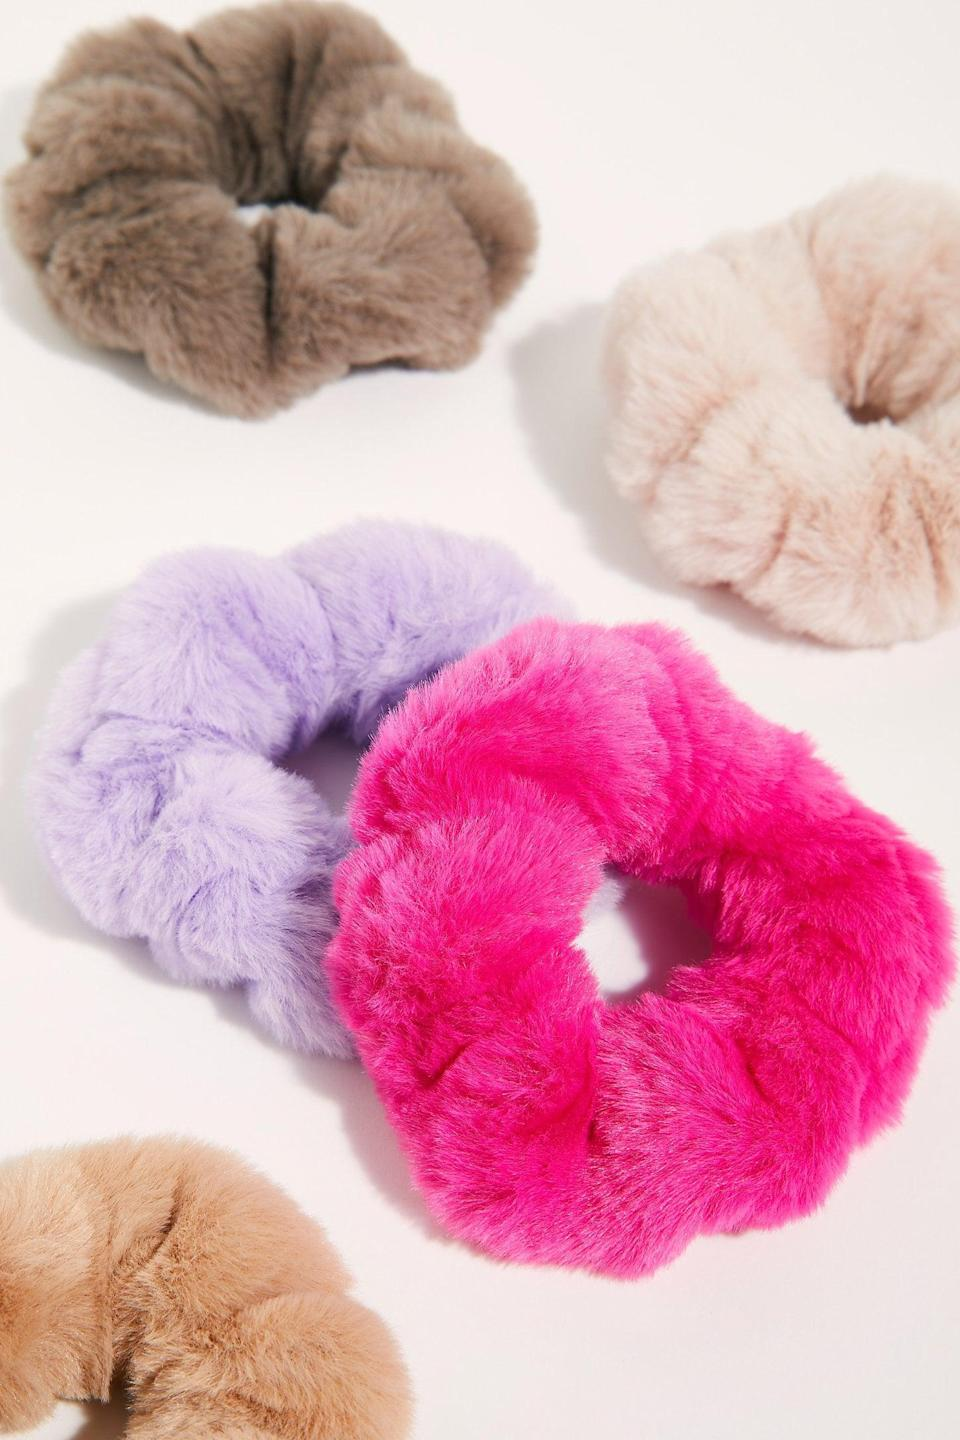 """<p>Who could refuse this <a href=""""https://www.popsugar.com/buy/Faux-Fur-Scrunchie-527148?p_name=Faux%20Fur%20Scrunchie&retailer=freepeople.com&pid=527148&price=8&evar1=fab%3Aus&evar9=45460327&evar98=https%3A%2F%2Fwww.popsugar.com%2Ffashion%2Fphoto-gallery%2F45460327%2Fimage%2F46977998%2FFaux-Fur-Scrunchie&list1=shopping%2Cgifts%2Cfree%20people%2Choliday%2Cgift%20guide%2Cgifts%20for%20women&prop13=api&pdata=1"""" class=""""link rapid-noclick-resp"""" rel=""""nofollow noopener"""" target=""""_blank"""" data-ylk=""""slk:Faux Fur Scrunchie"""">Faux Fur Scrunchie</a> ($8)?</p>"""